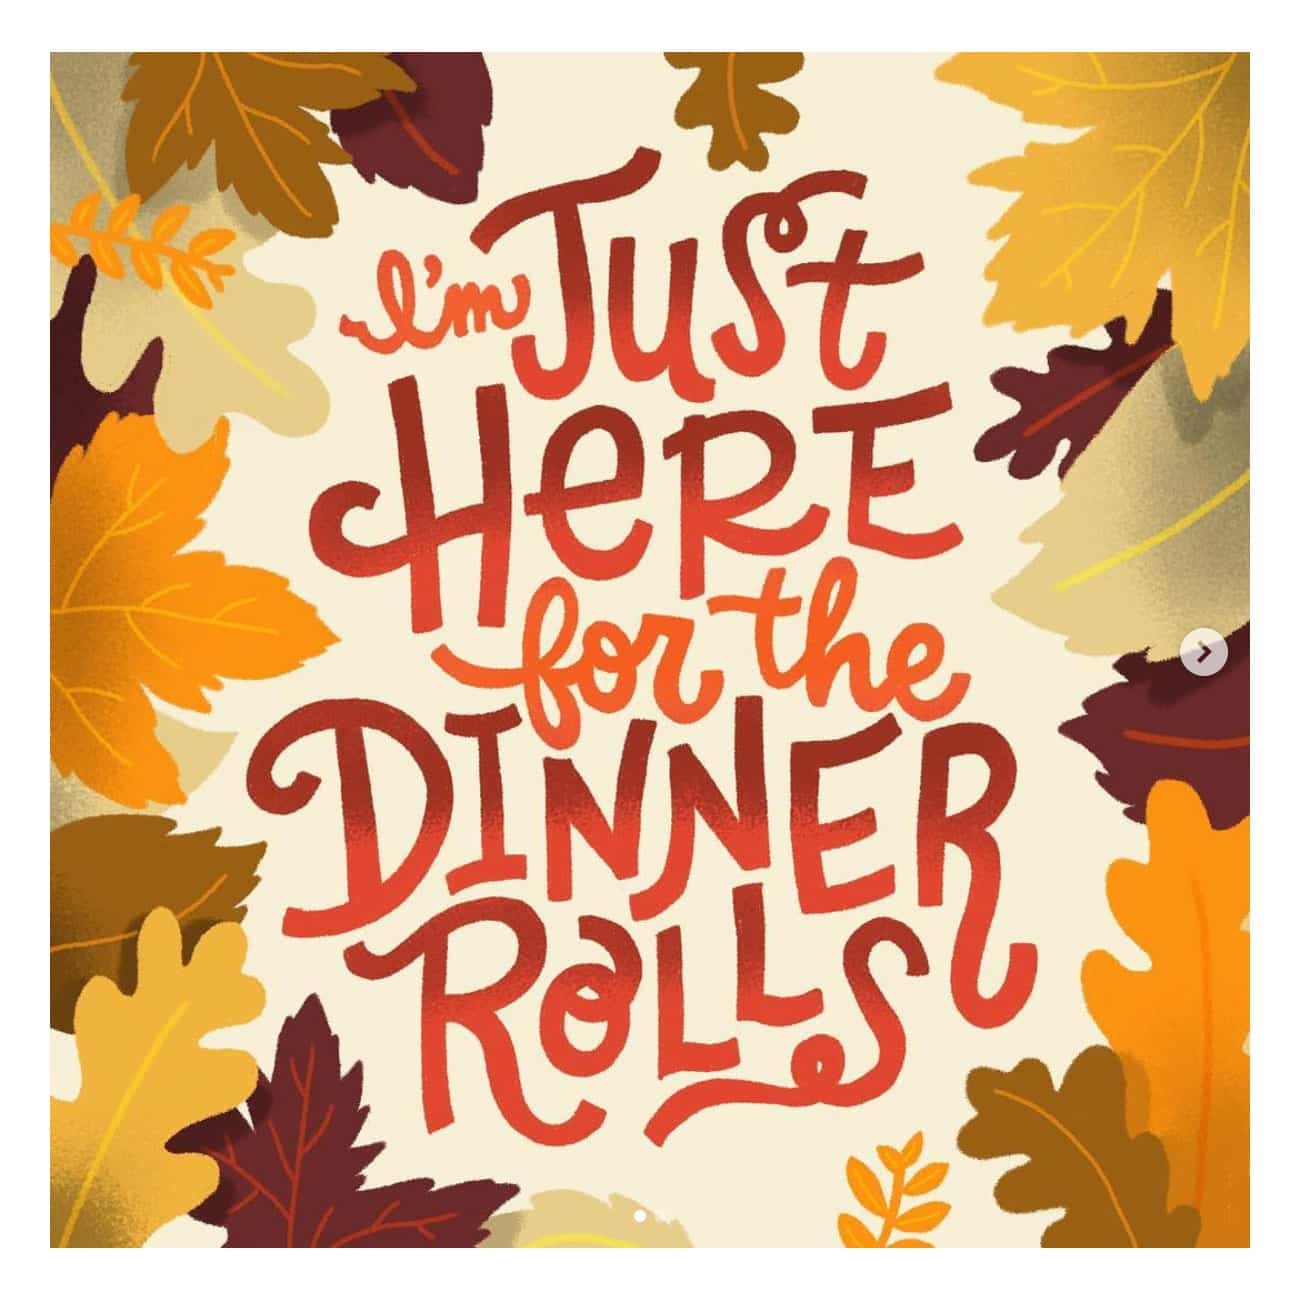 I'm just Here for the Dinner Rolls, lettered with leaves around the words